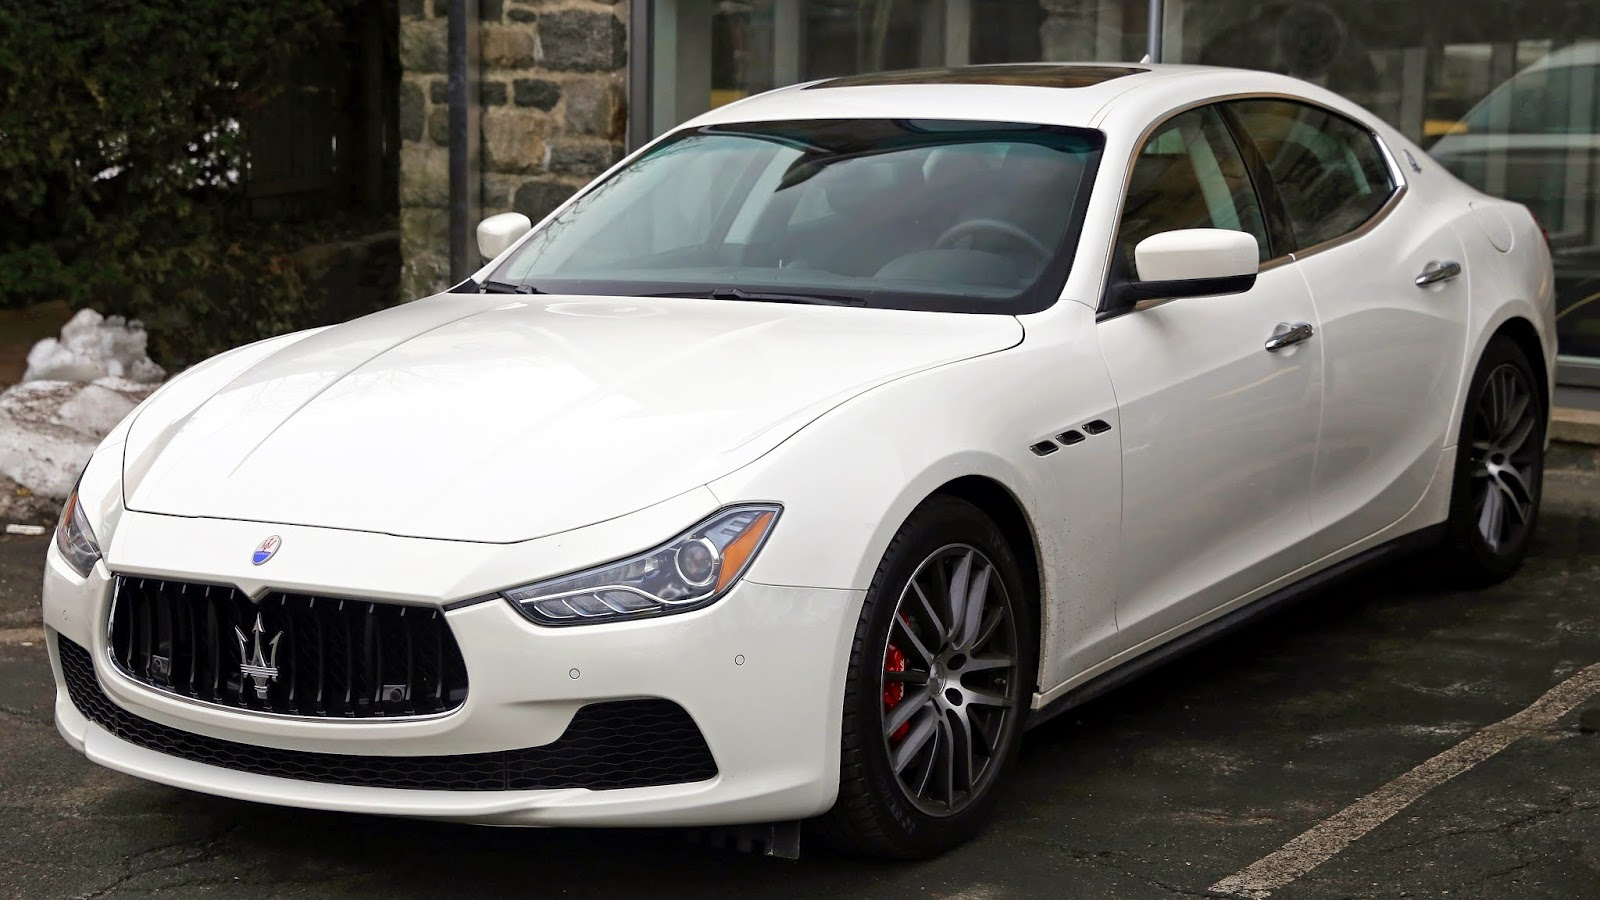 Maserati Ghibli Q4 - wallpaper hd | HD Wallpaper with cars ...